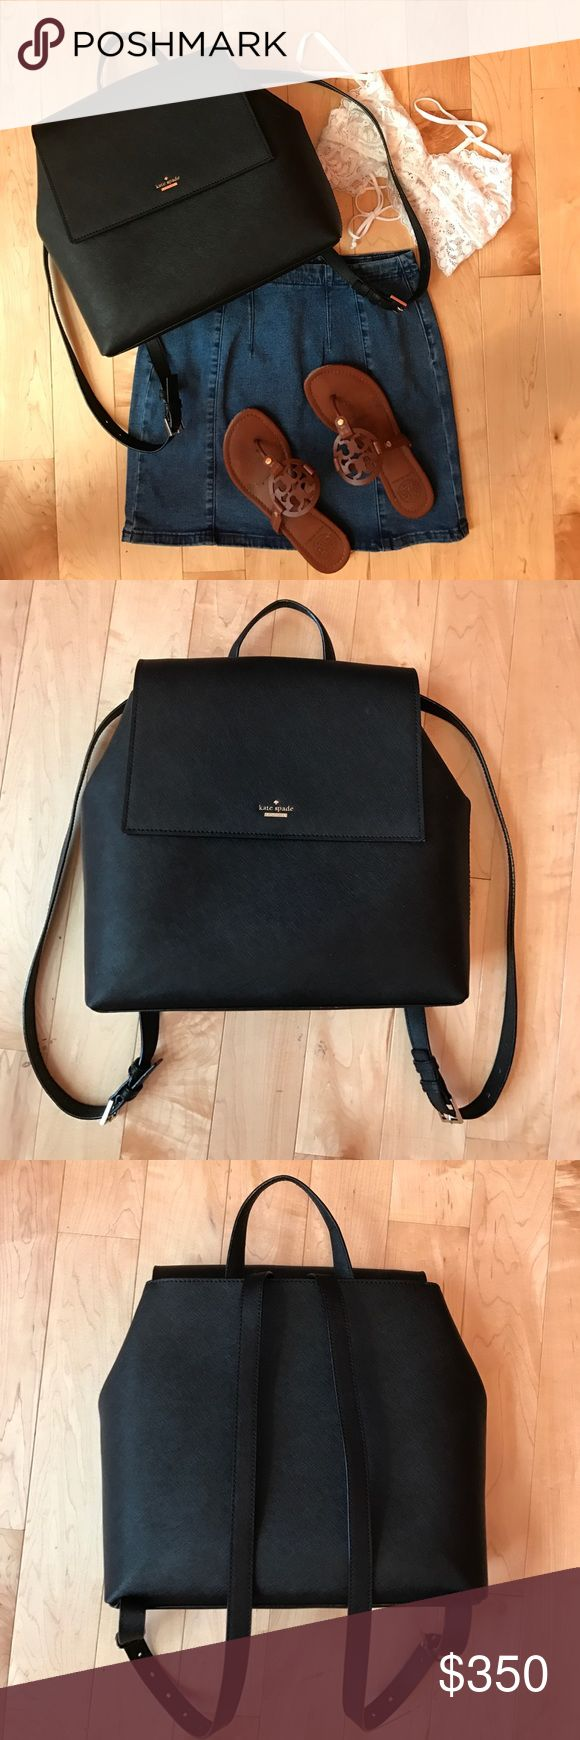 HP  Kate Spade Backpack Kate Spade backpack in beautiful condition on the exterior and interior.  Black with gold hardware and striped lining kate spade Bags Backpacks